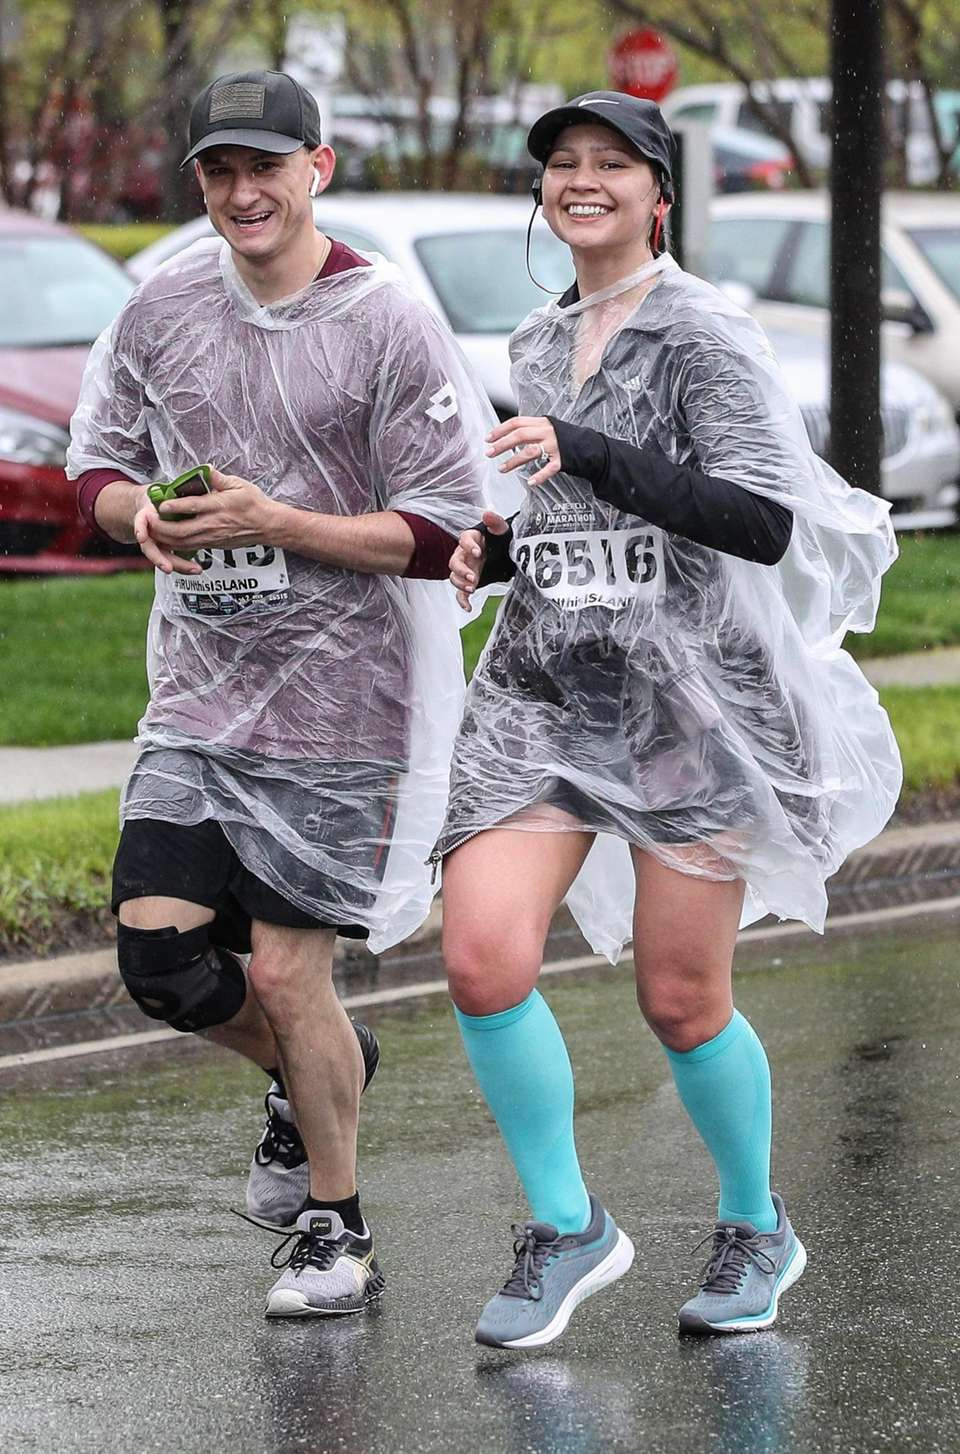 Runners weather the rain at the Long Island